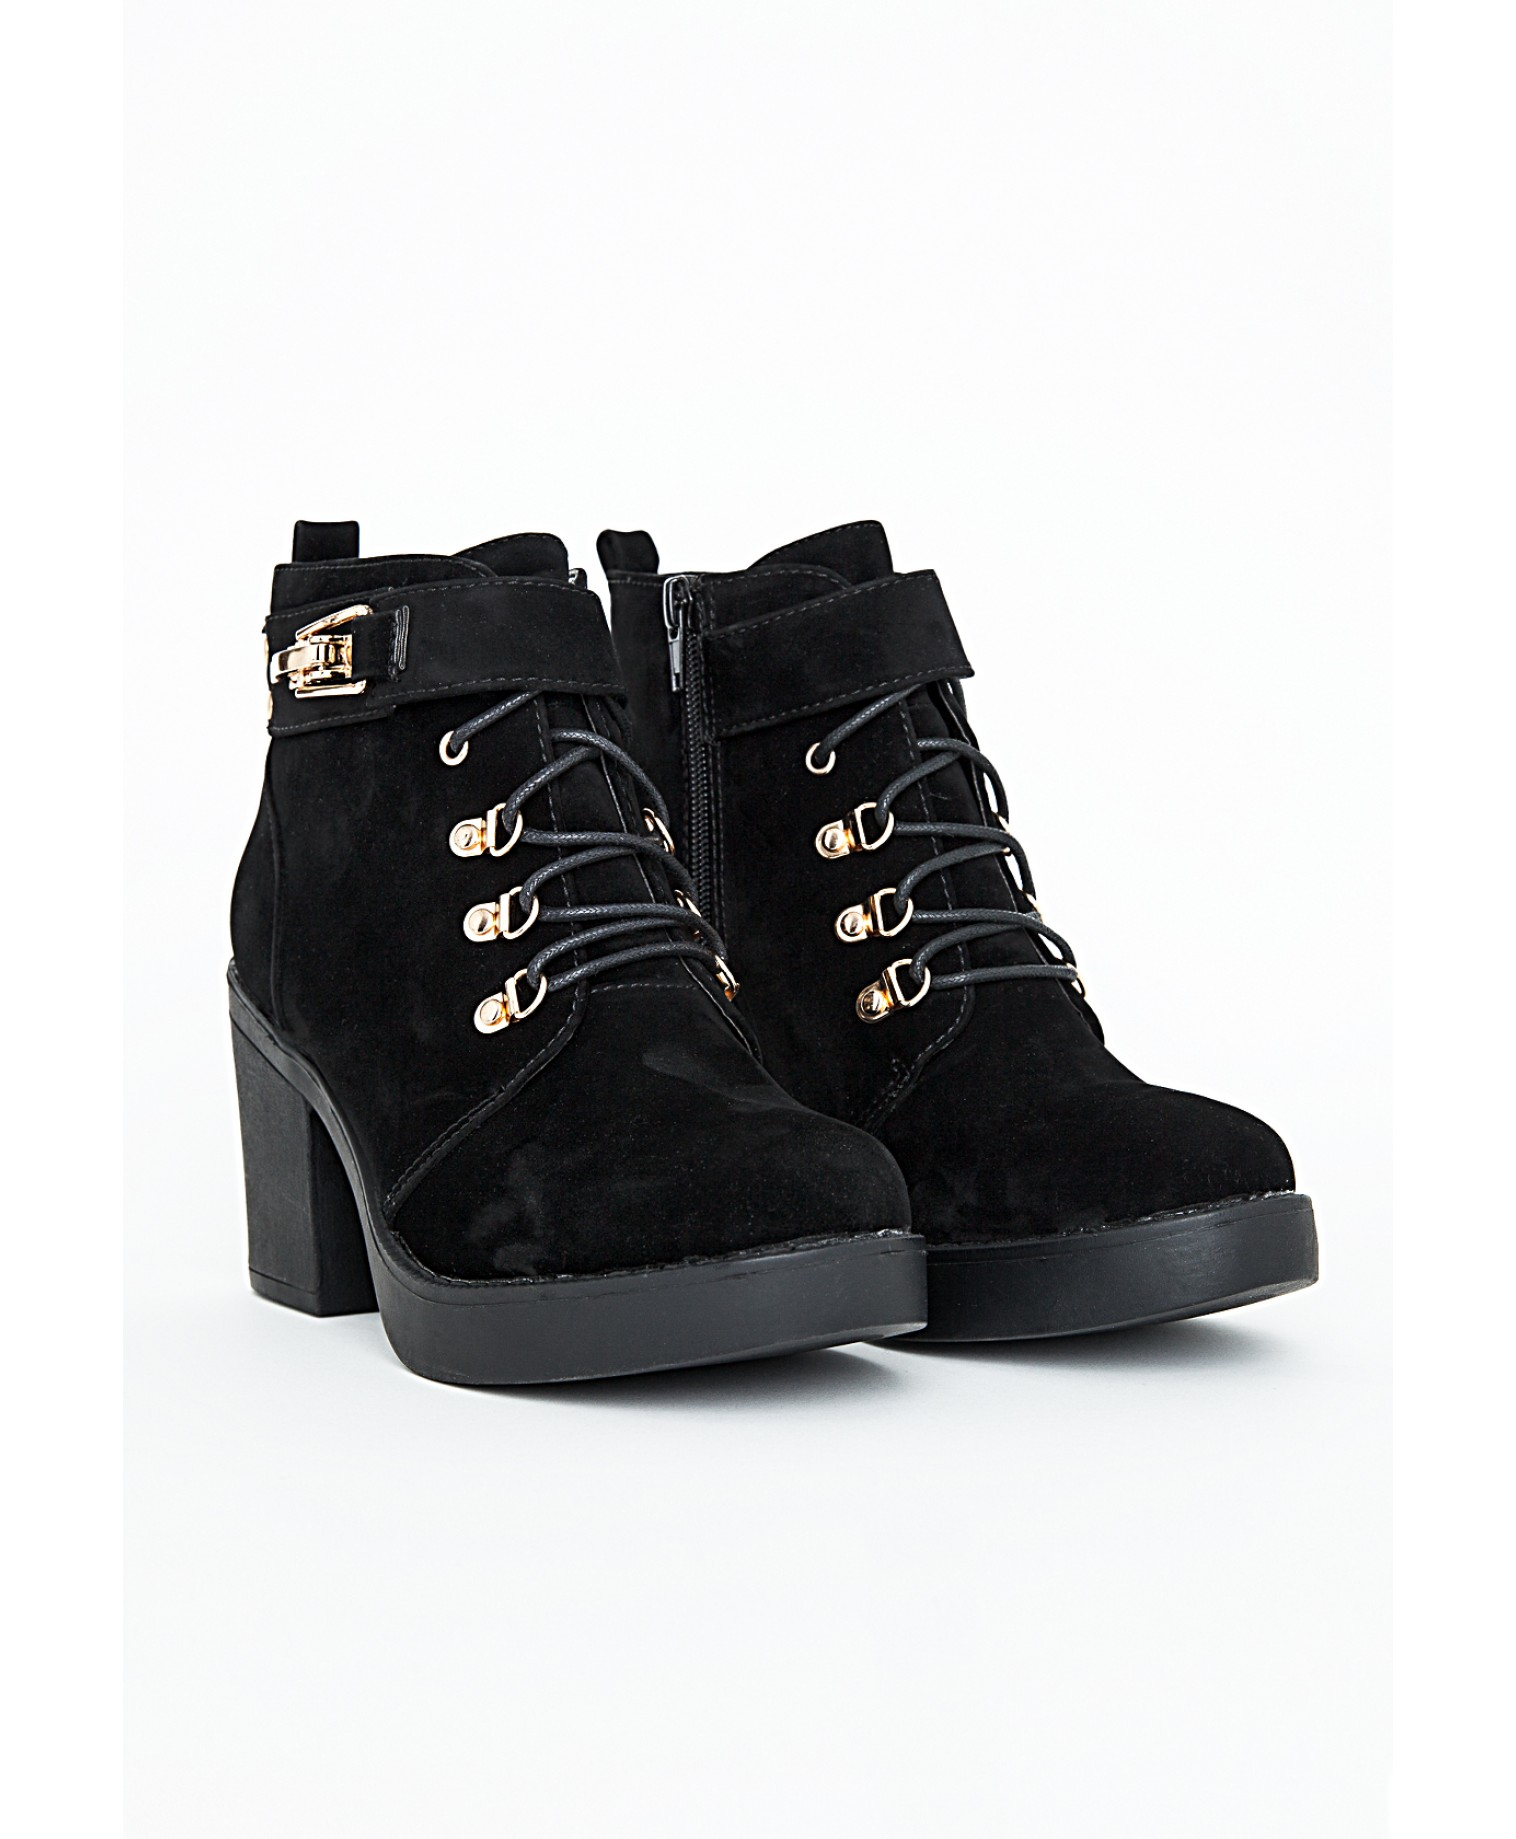 Felisimina black suede ankle boots with buckle detail